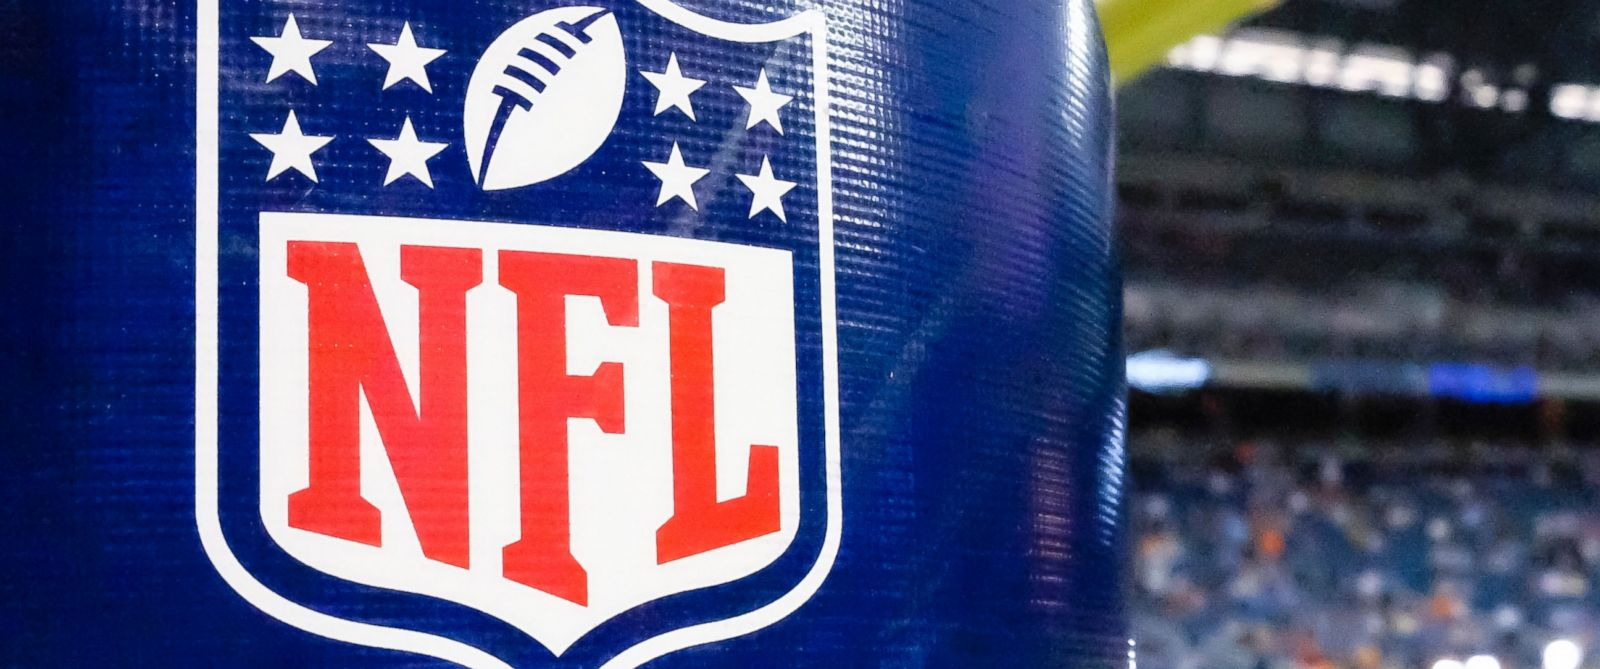 PHOTO: This Aug. 9, 2014 file photo shows an NFL logo on a goal post padding before a preseason NFL football game between the Detroit Lions and the Cleveland Browns at Ford Field in Detroit.